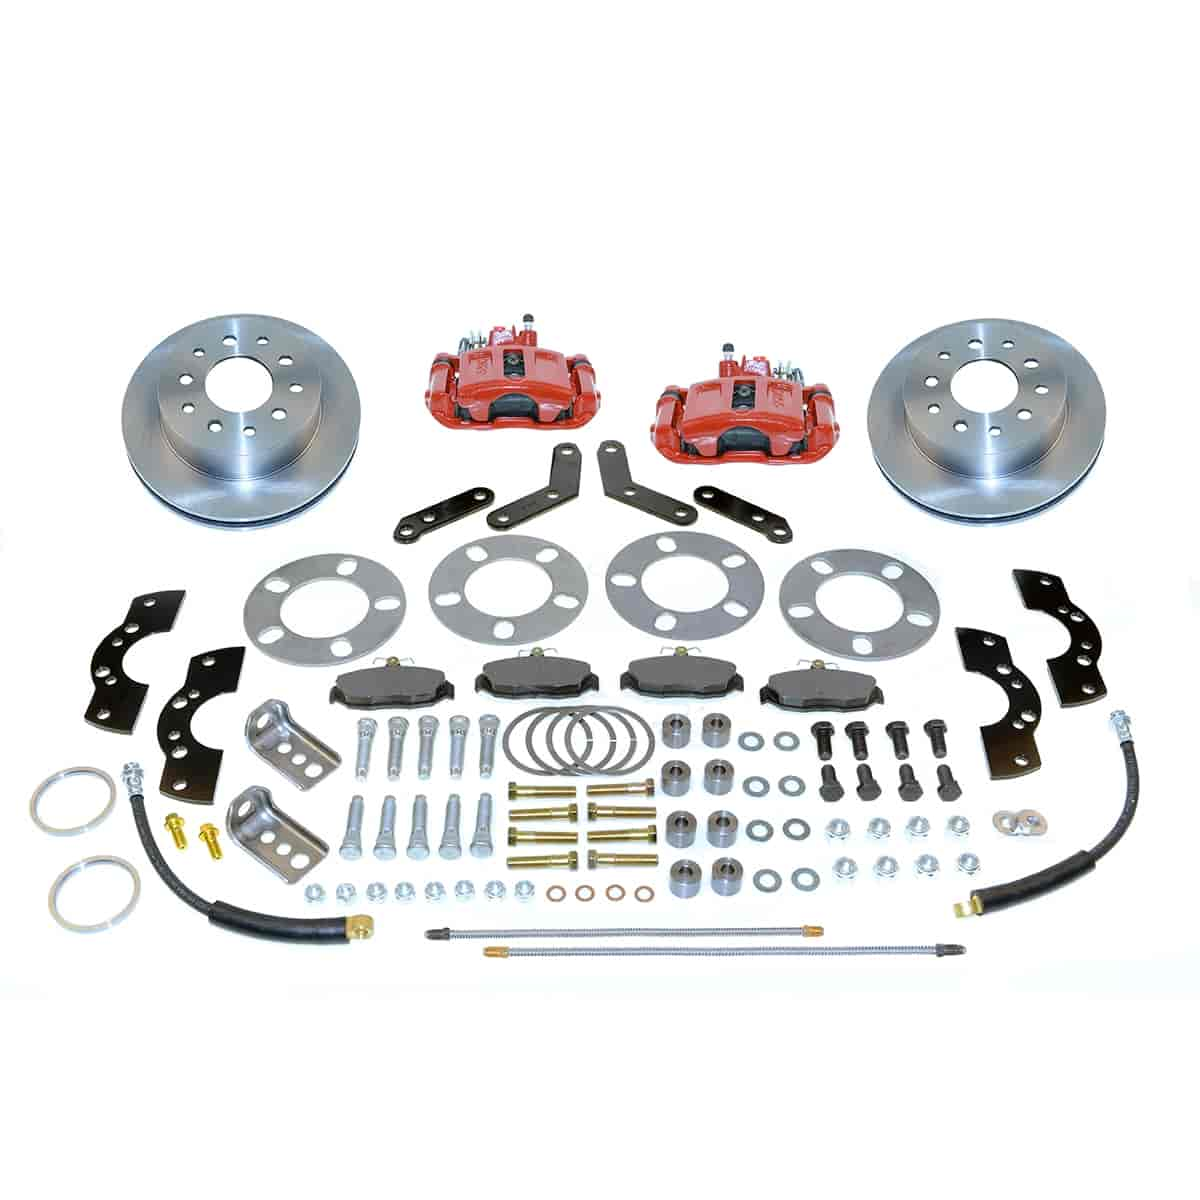 Stainless Steel Brakes A111-2R - Stainless Steel Brakes Single Piston Rear Disc Brake Conversion Kit